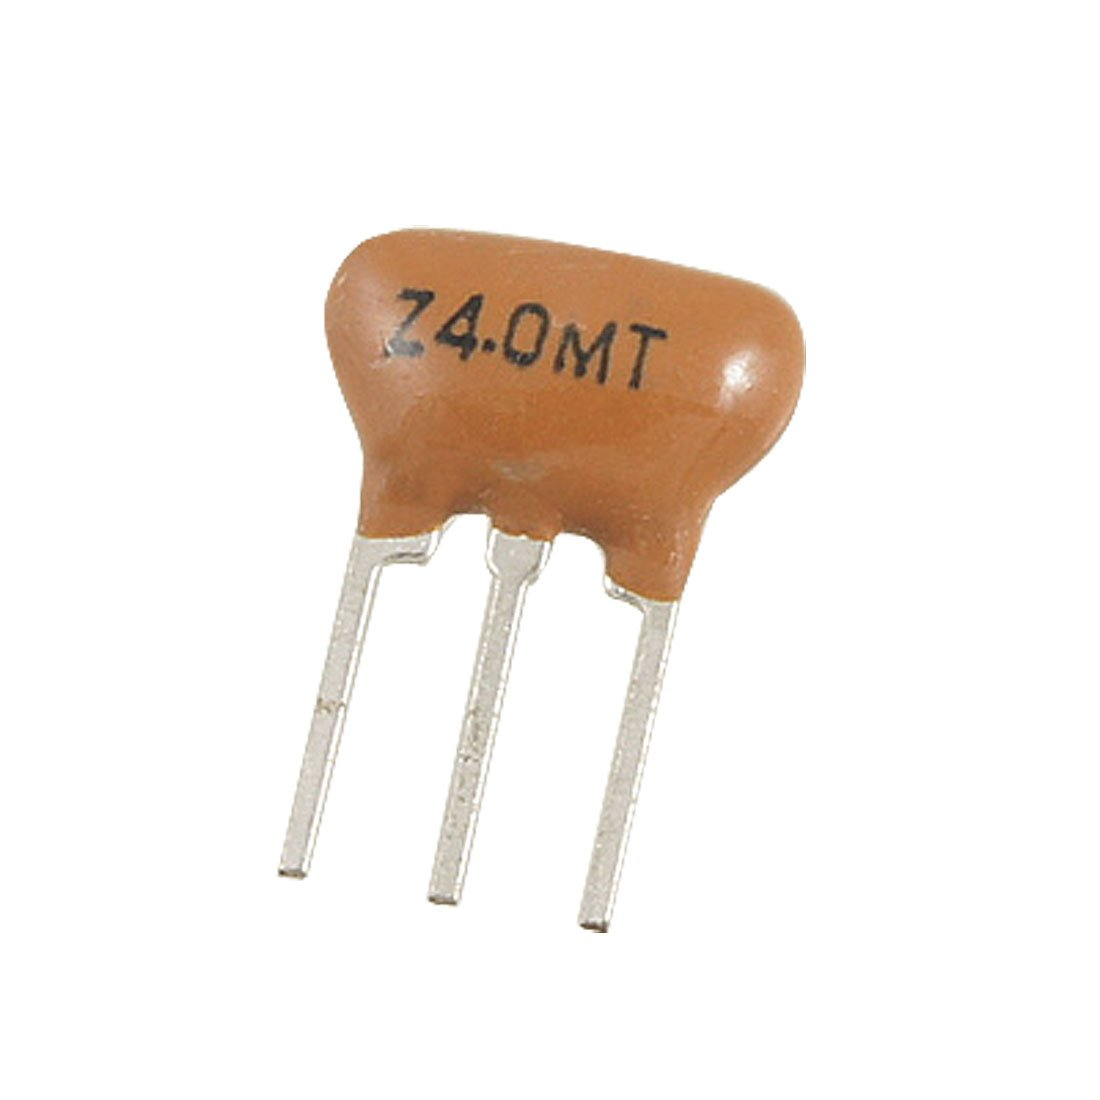 Uxcell a11101800ux0101 Through Hole Ceramic Resonators, 3 Pins, 4 MHz, Stat Series, 0.31'' Width, 0.43'' Length